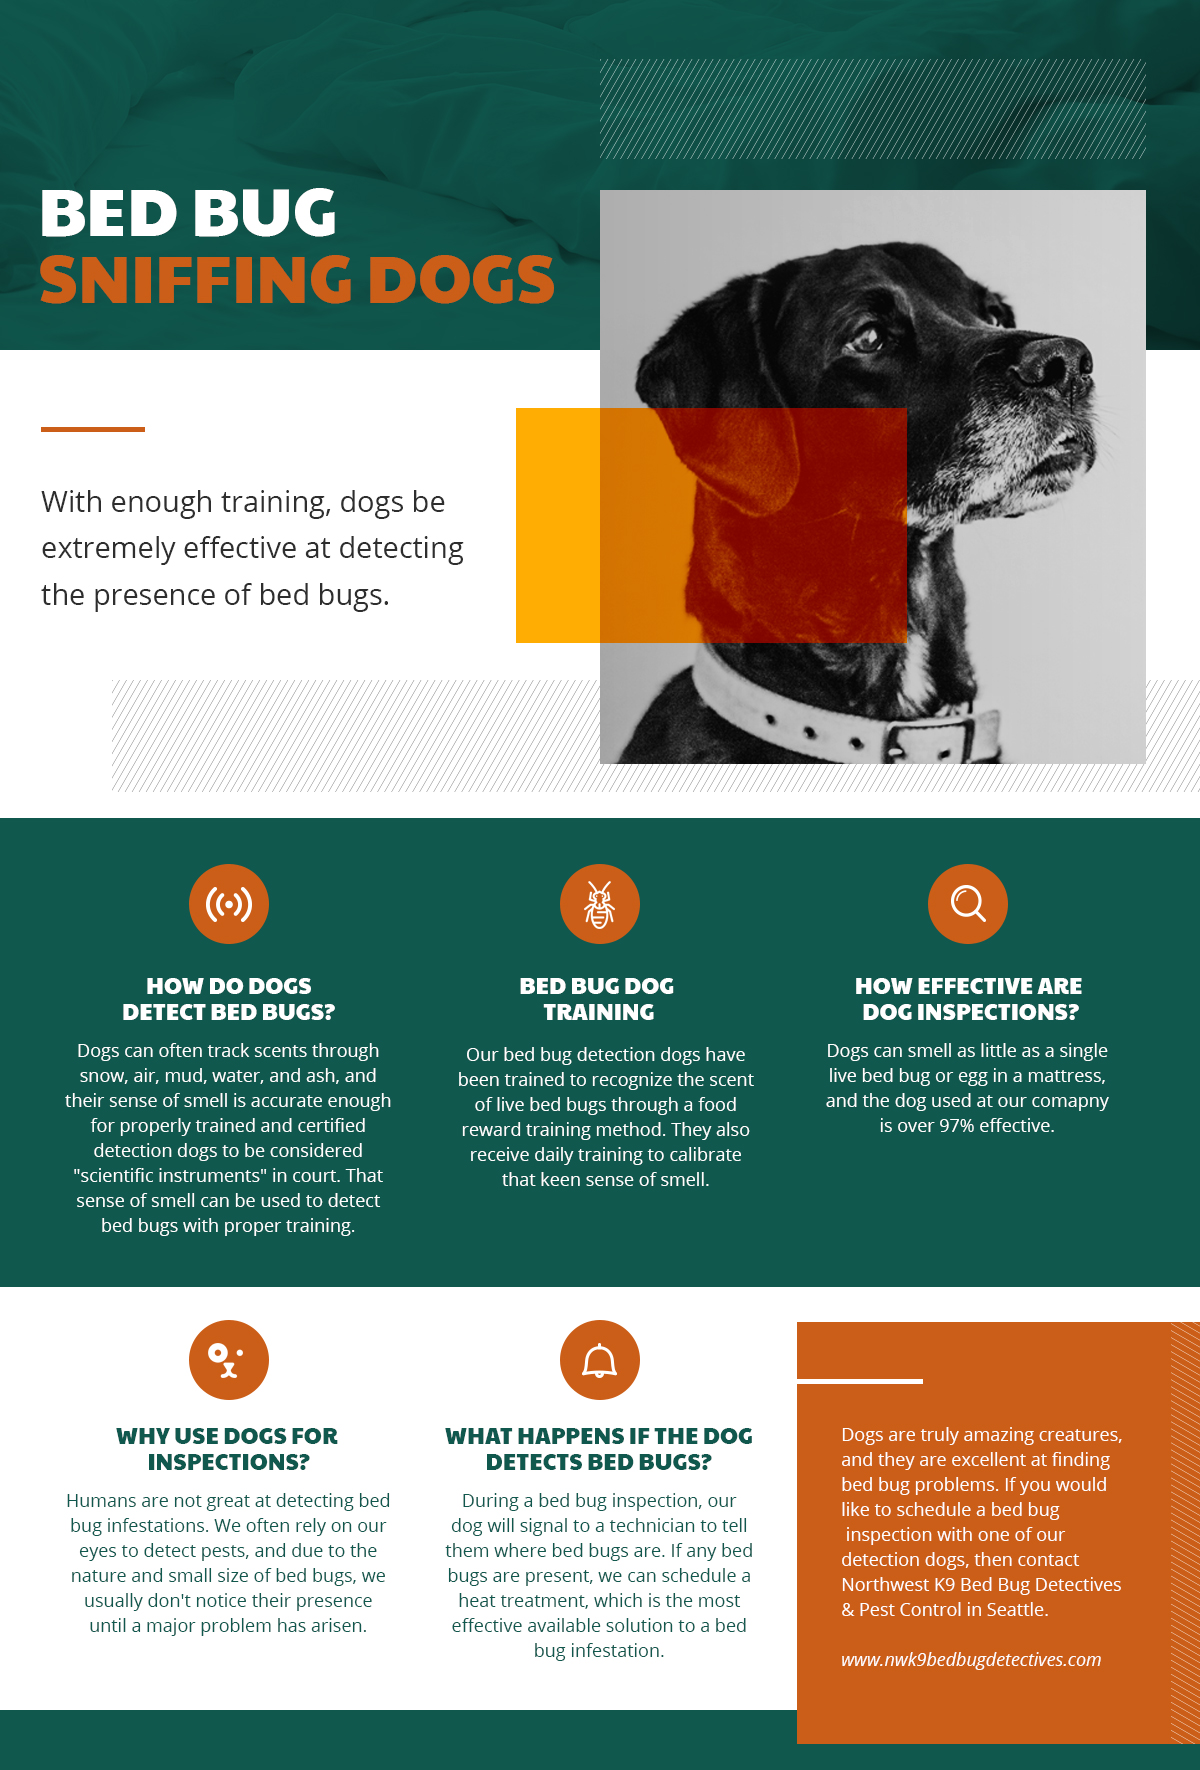 an infographic explaining the benefits of using bed bug detection dogs